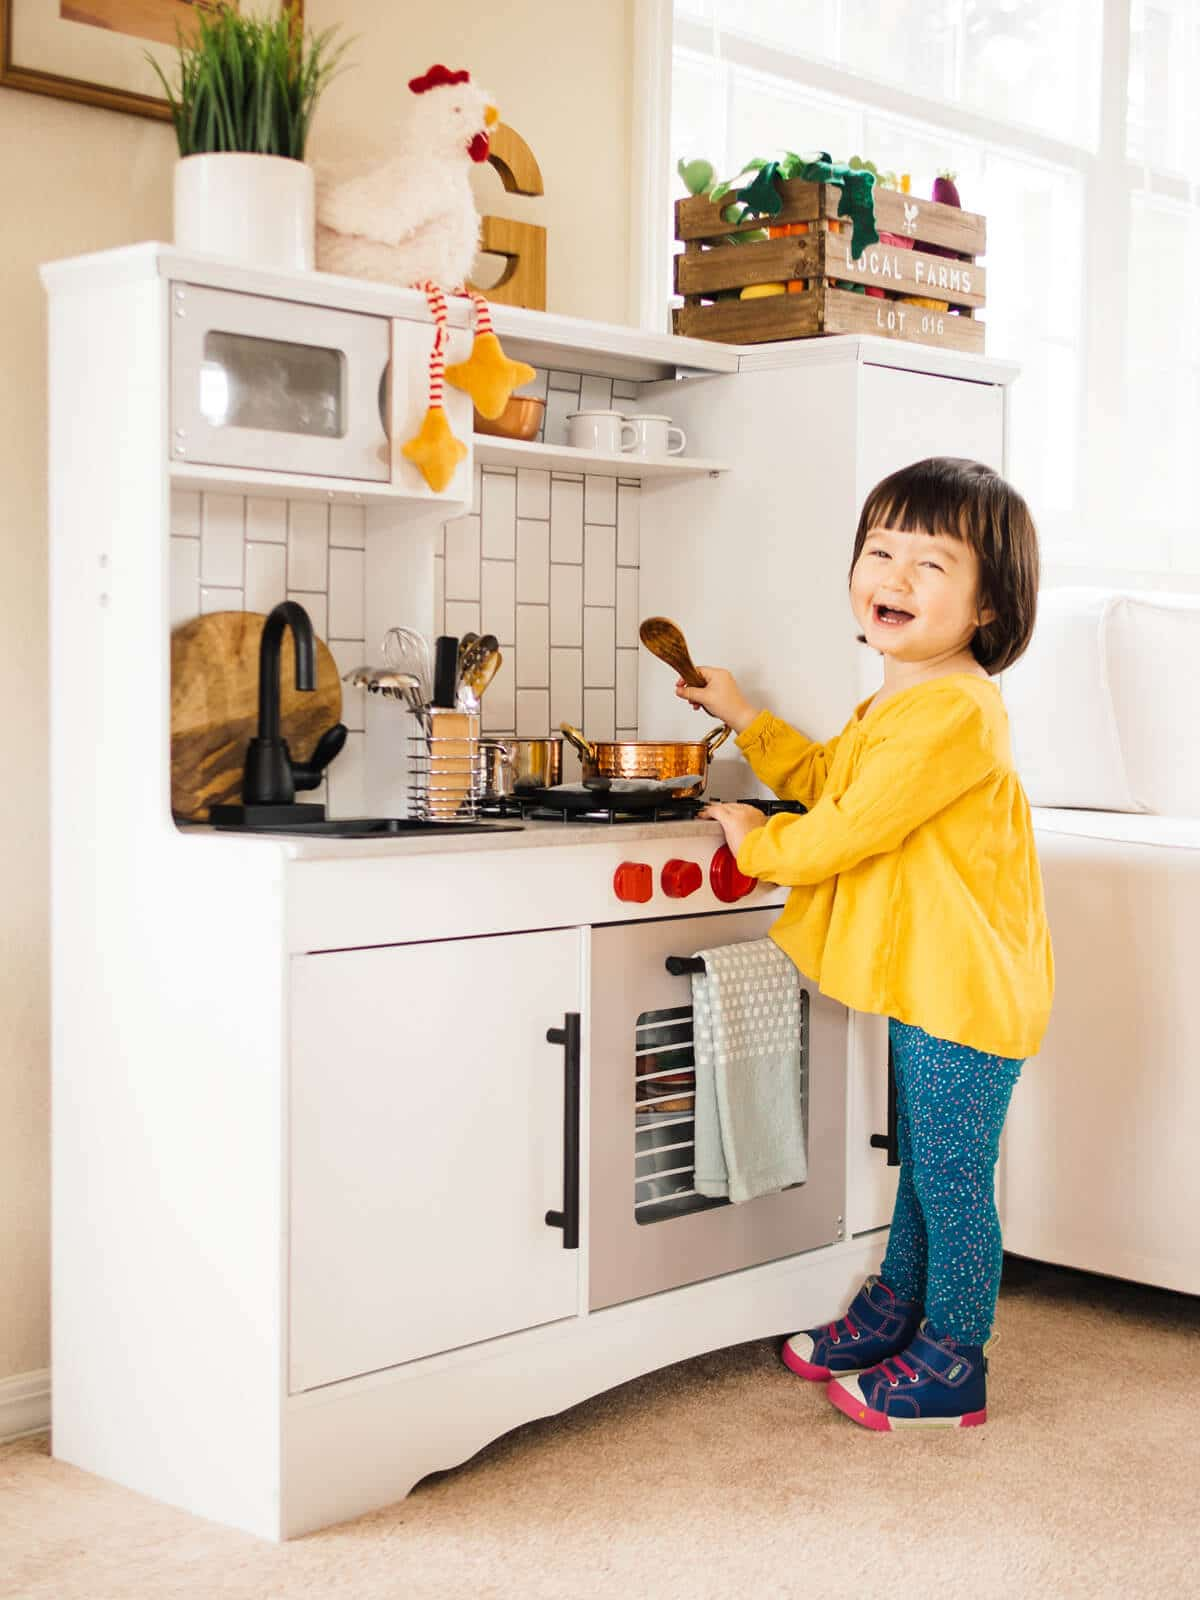 Cooking in her remodeled KidKraft play kitchen